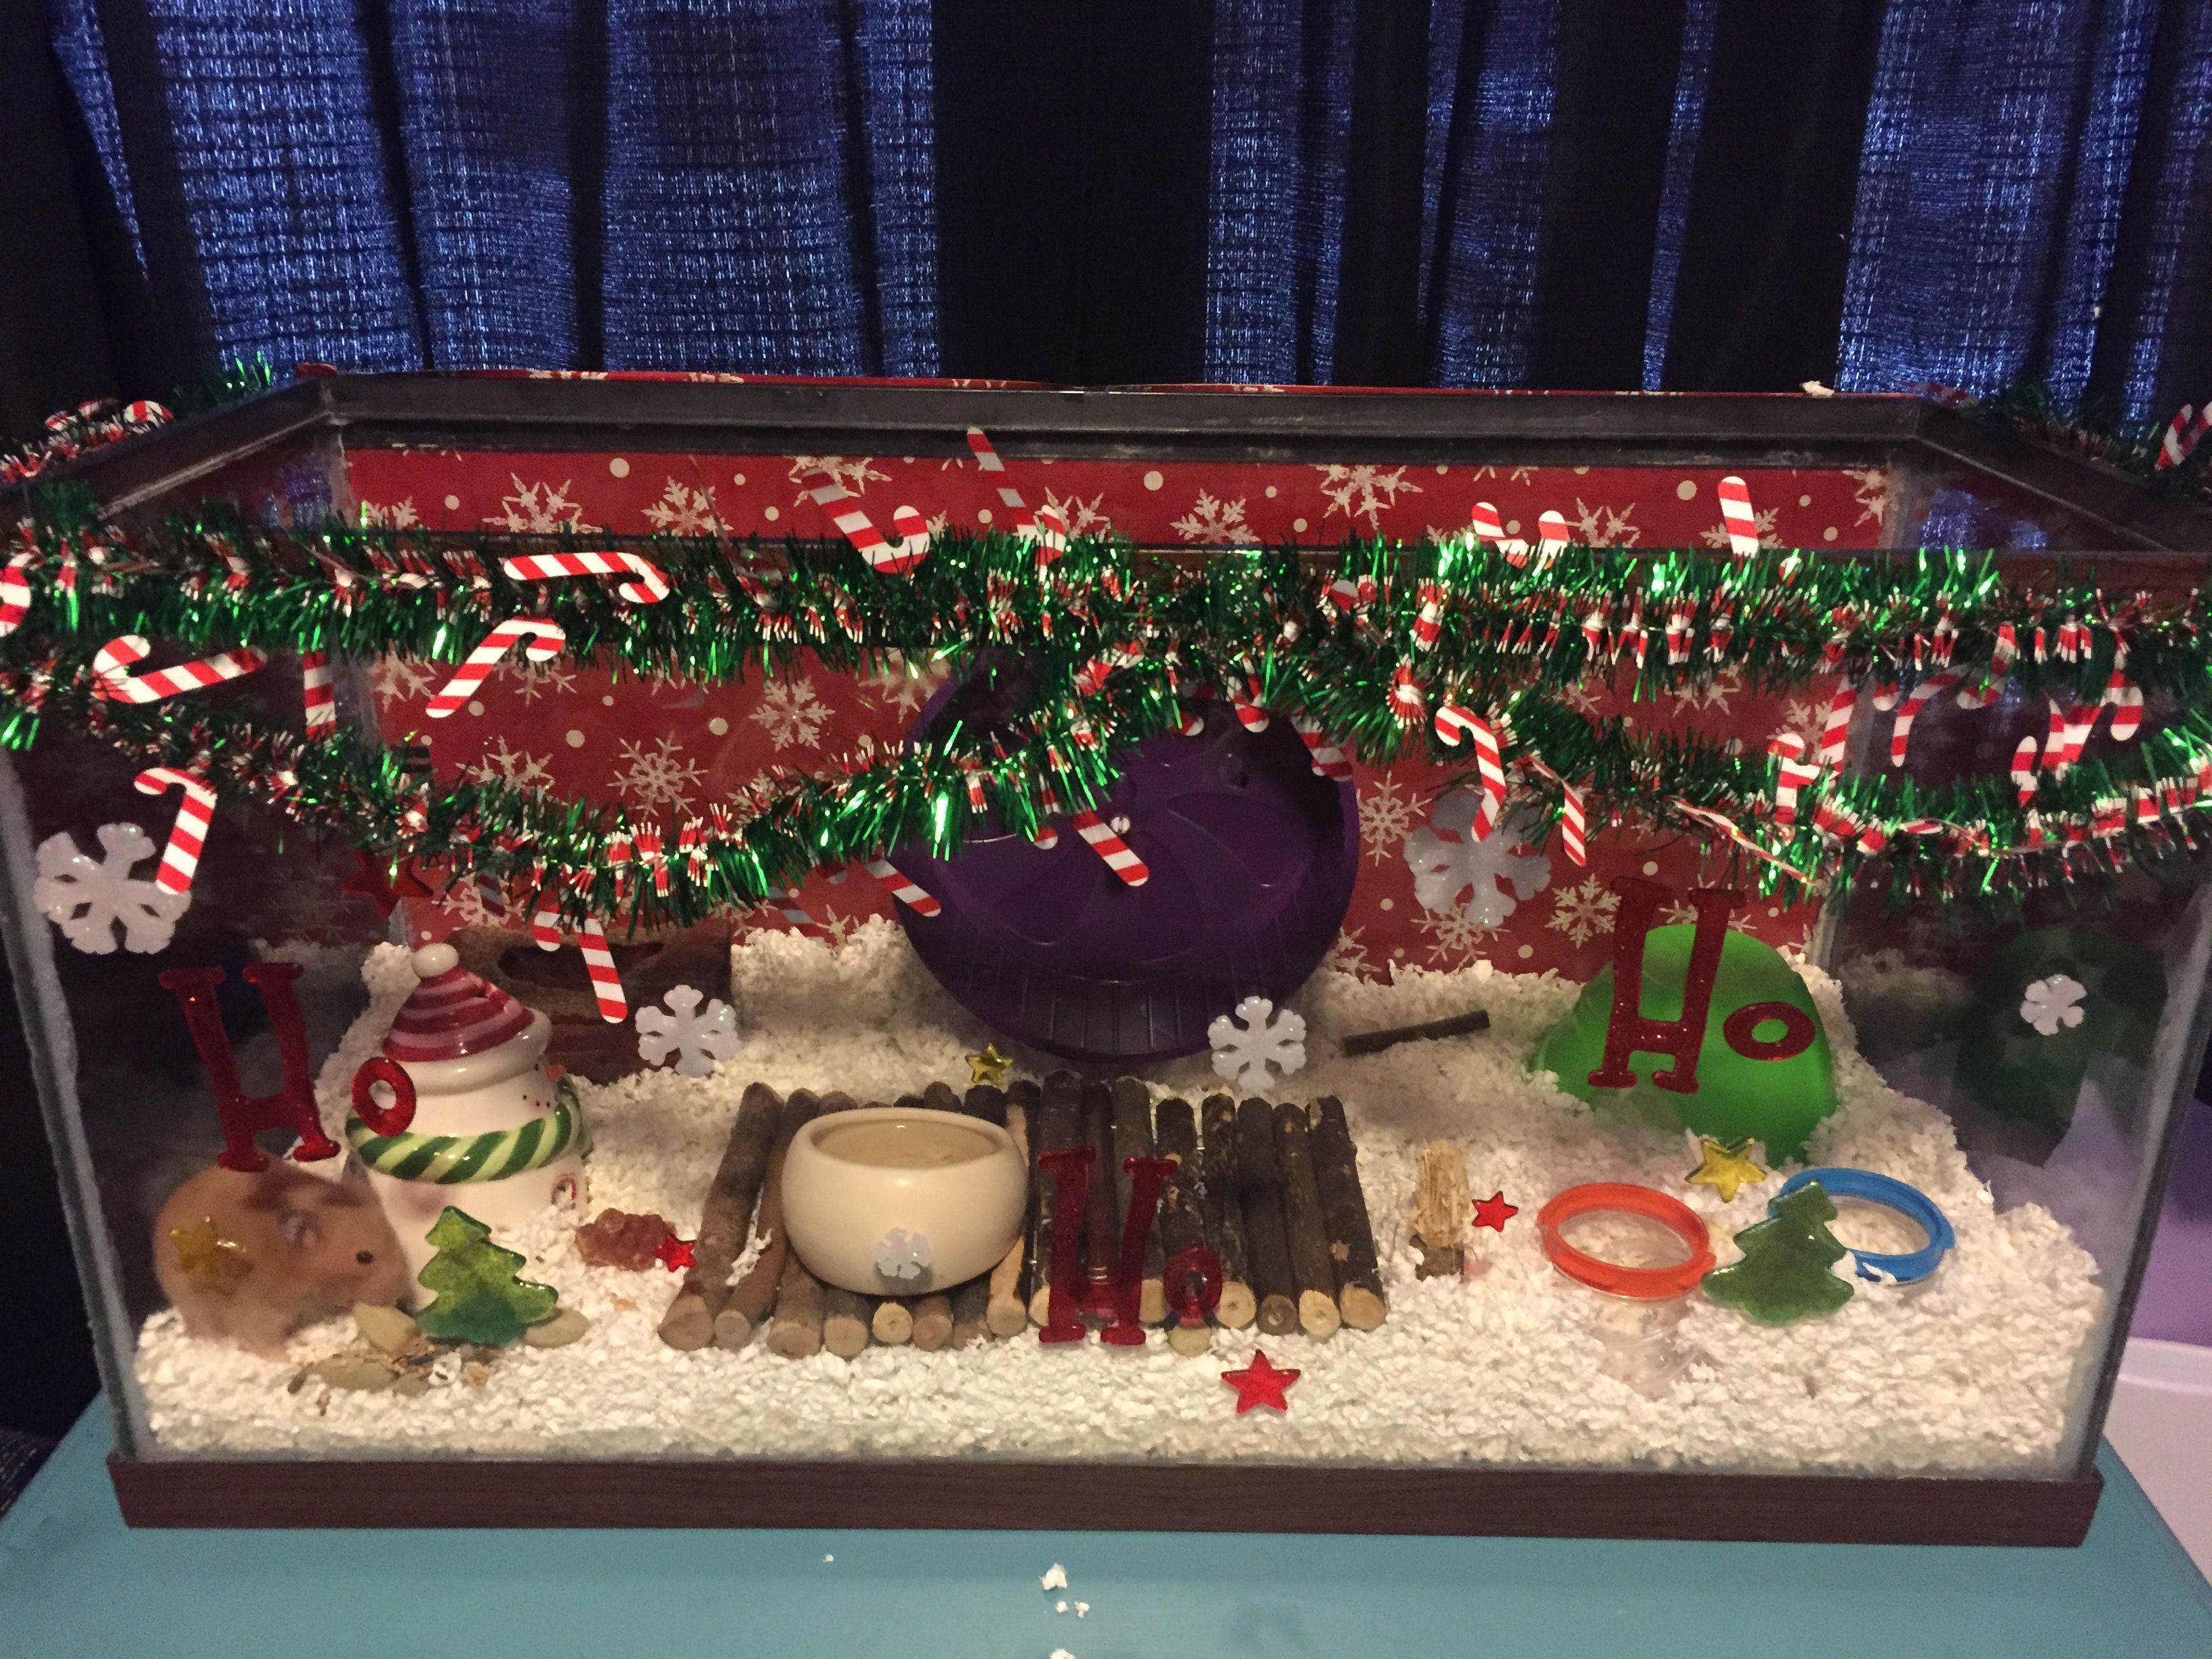 Christmas themed hamster cage/aquarium